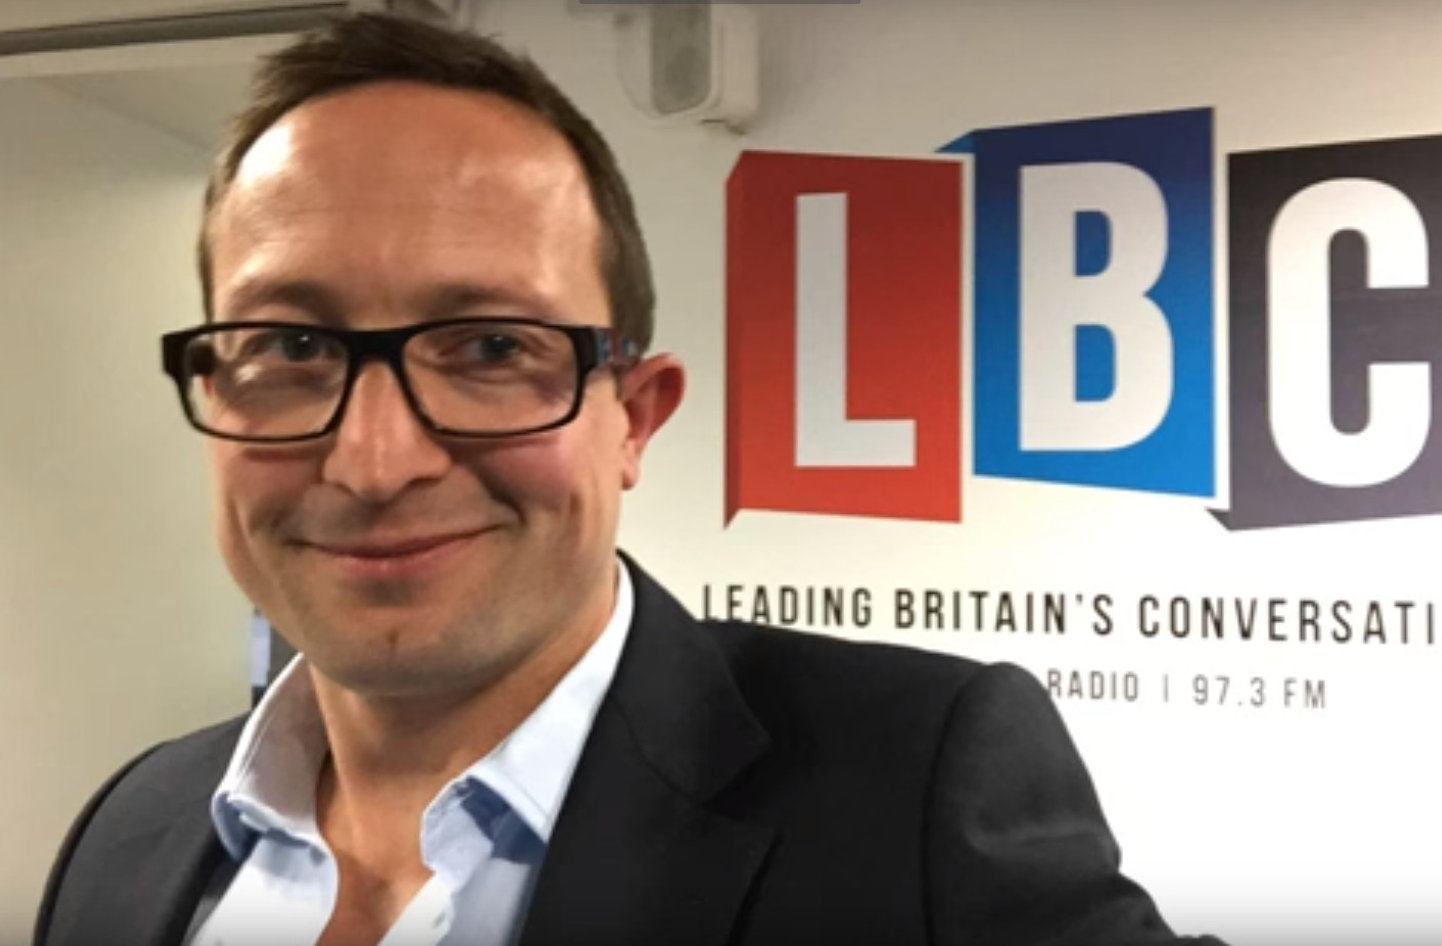 Charlie – back to LBC Radio